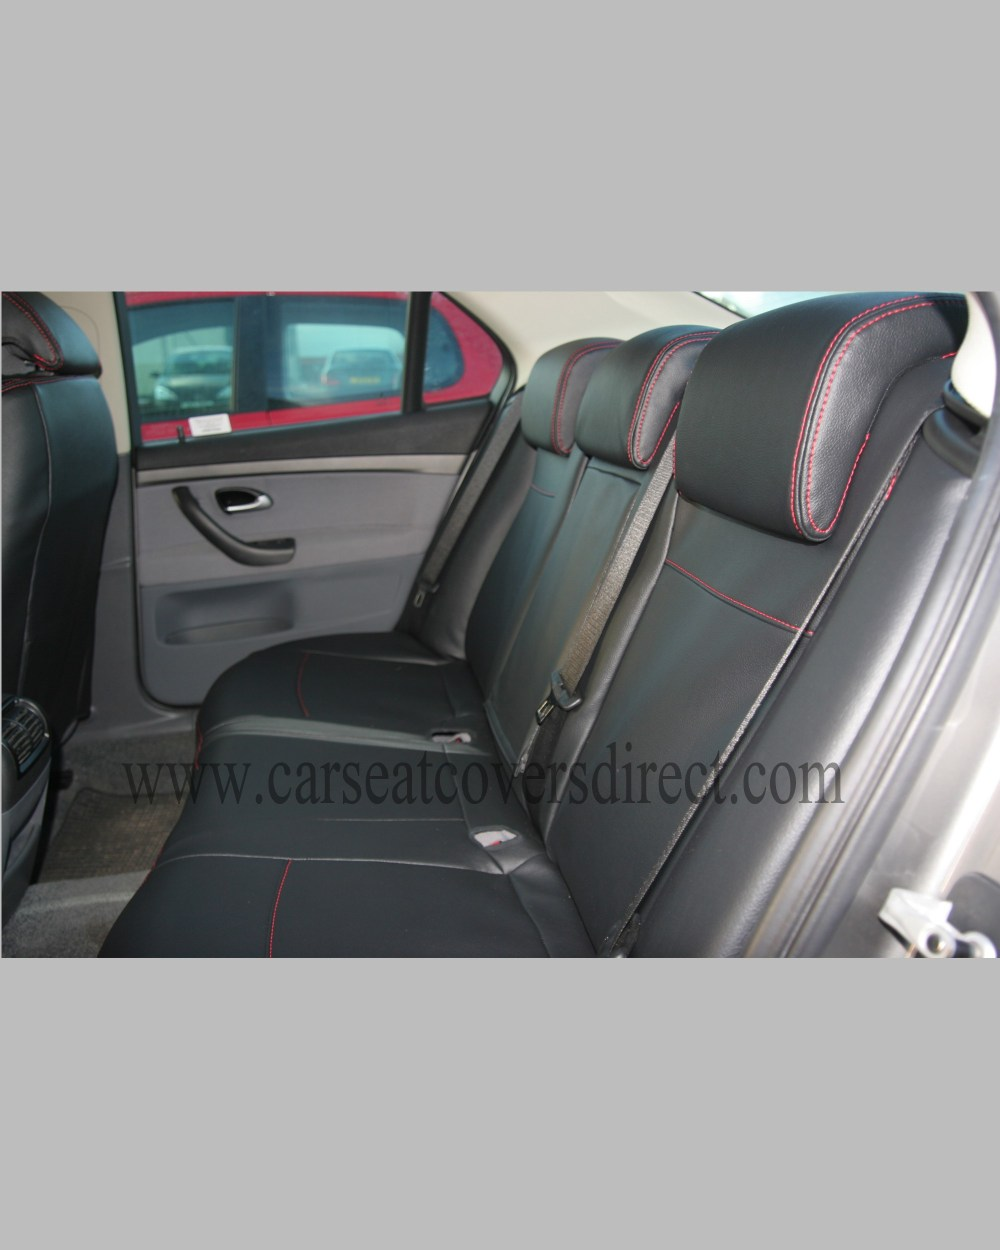 medium resolution of custom saab 9 3 seat covers more images click to view